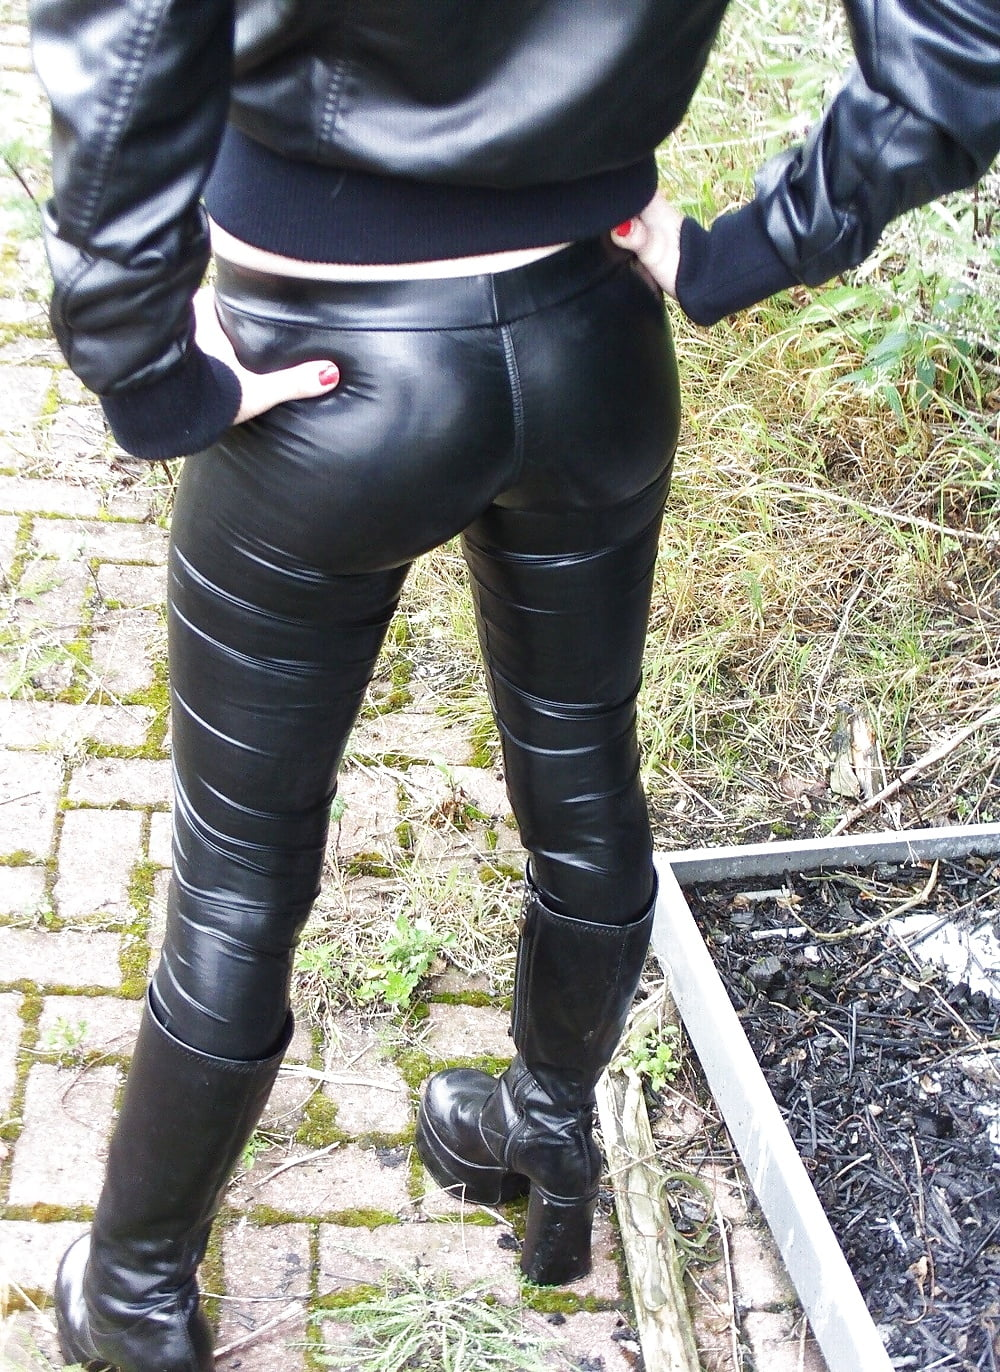 Porn in leather pants — photo 14